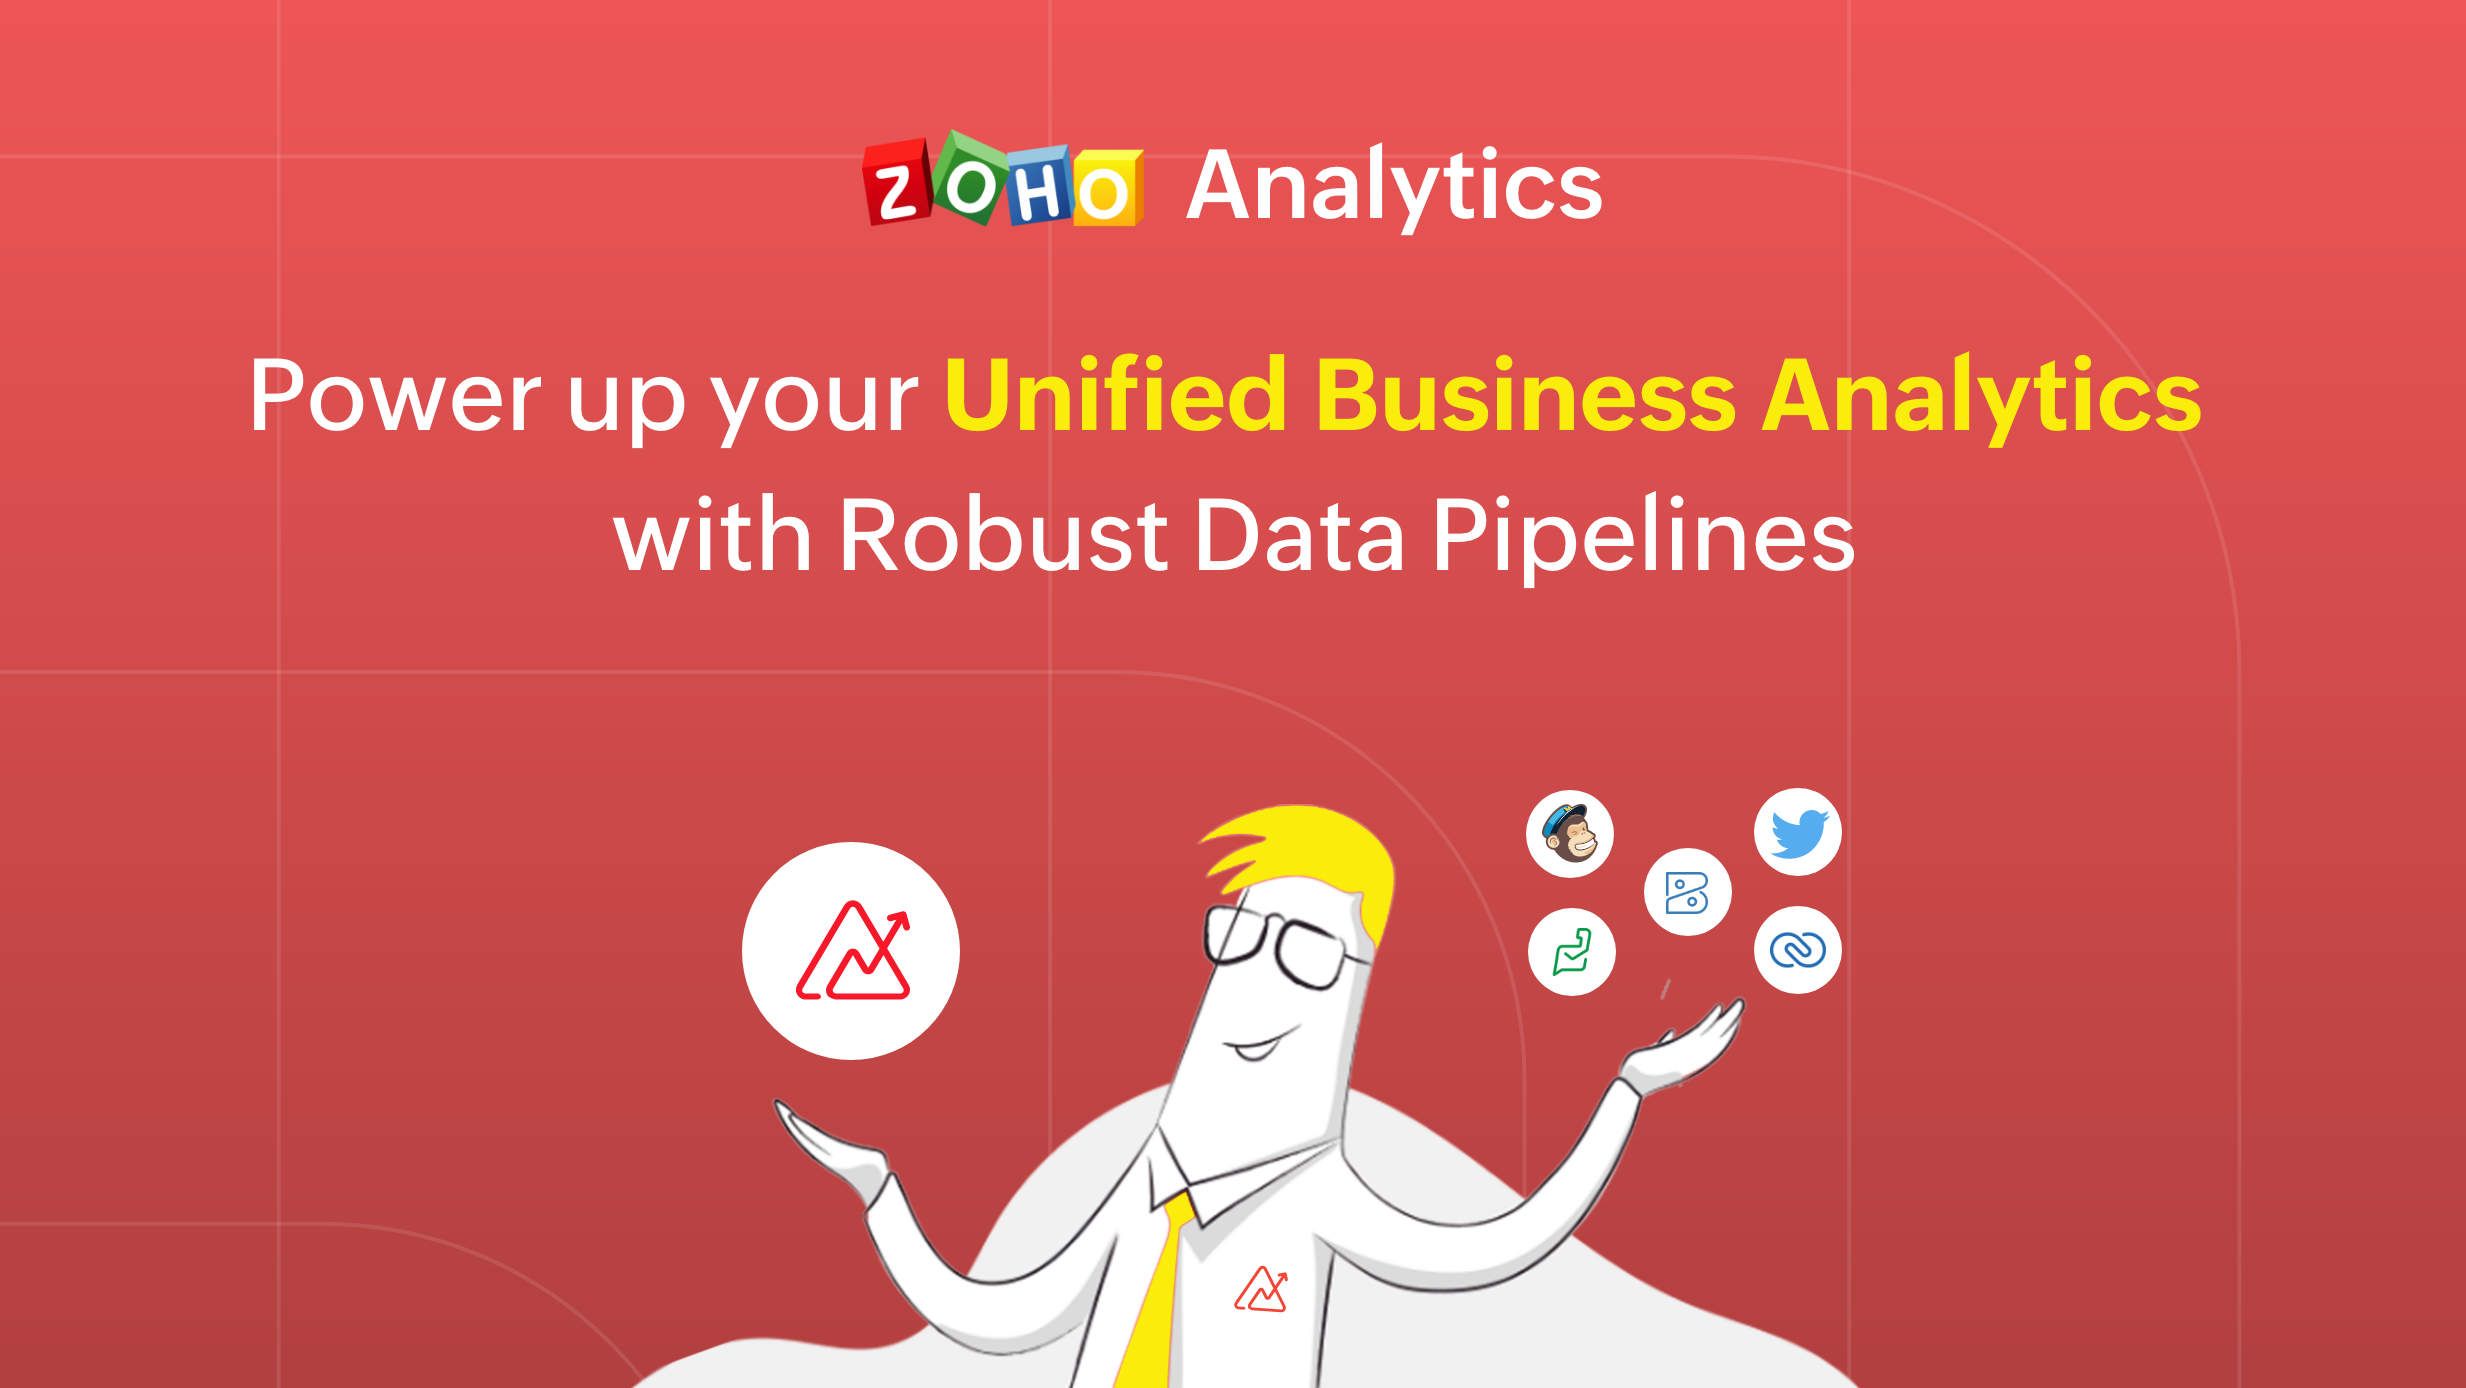 Power up your Unified Business Analytics with Robust Data Pipelines